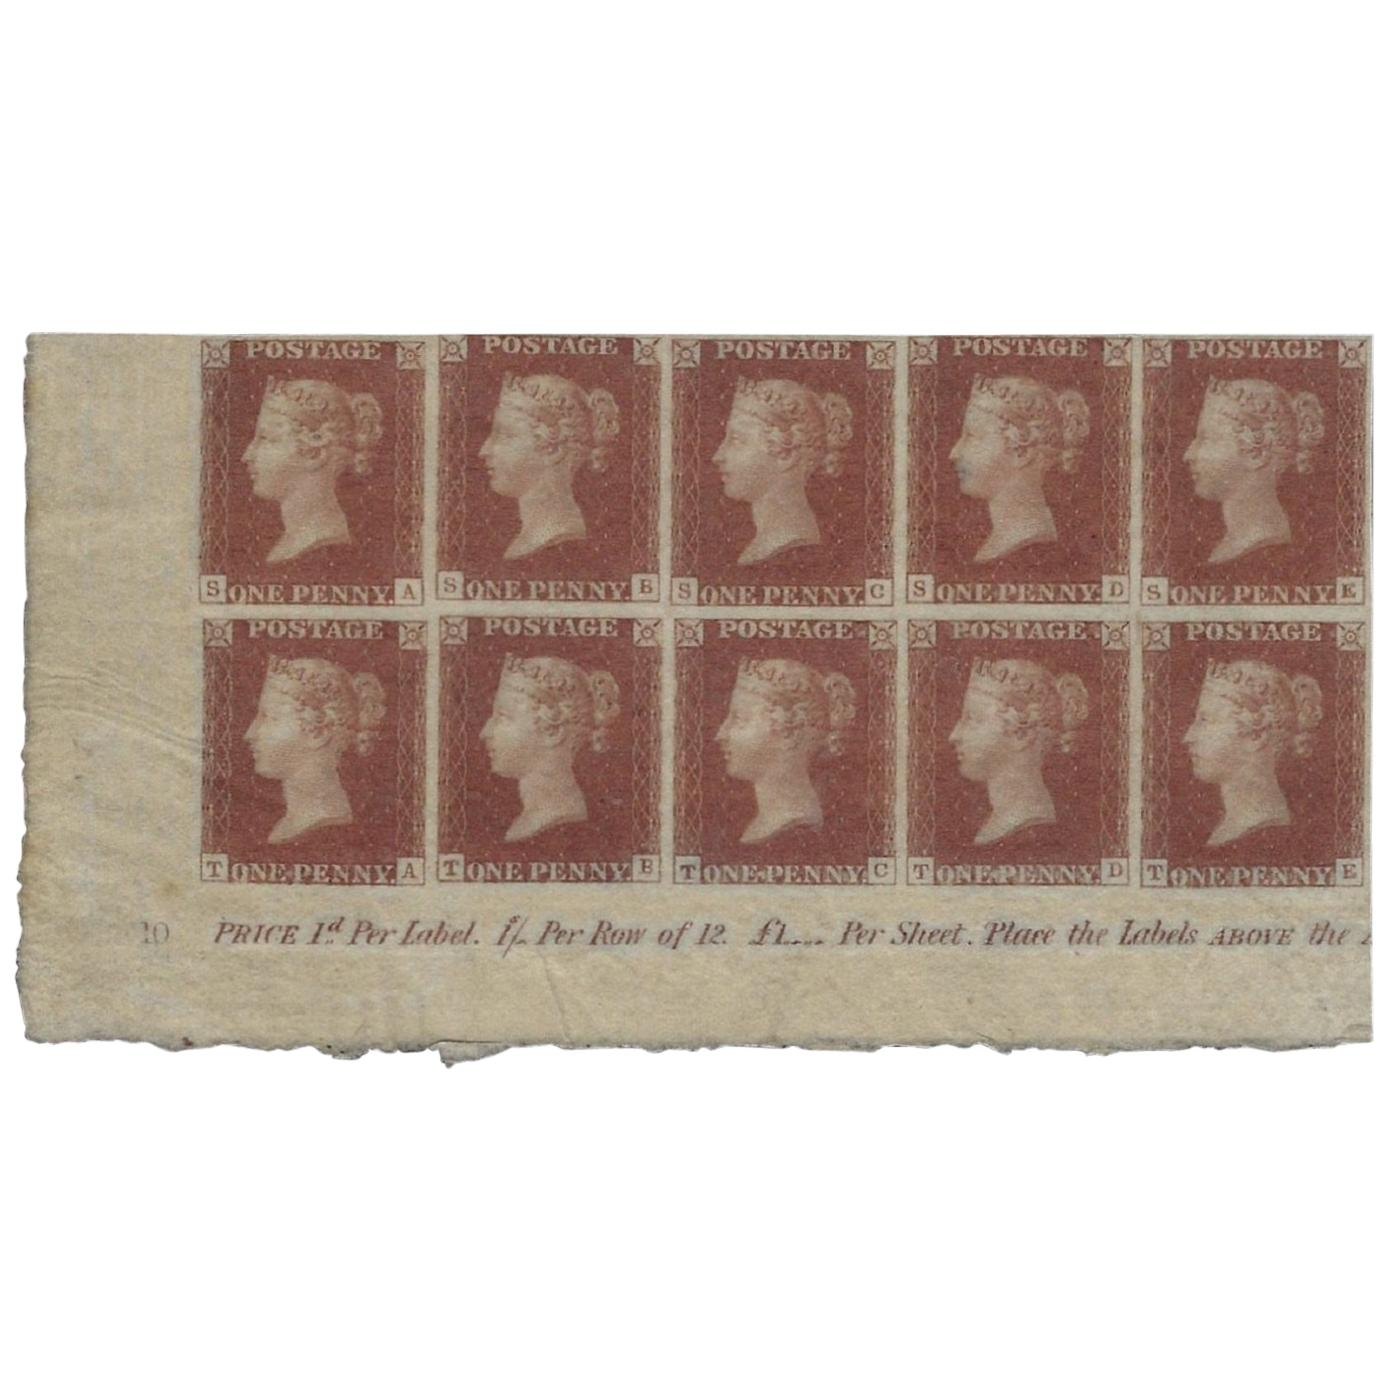 Great Britain 1841 1d Red Brown Plate 10, SG7 PL10 Antique Postage Stamps